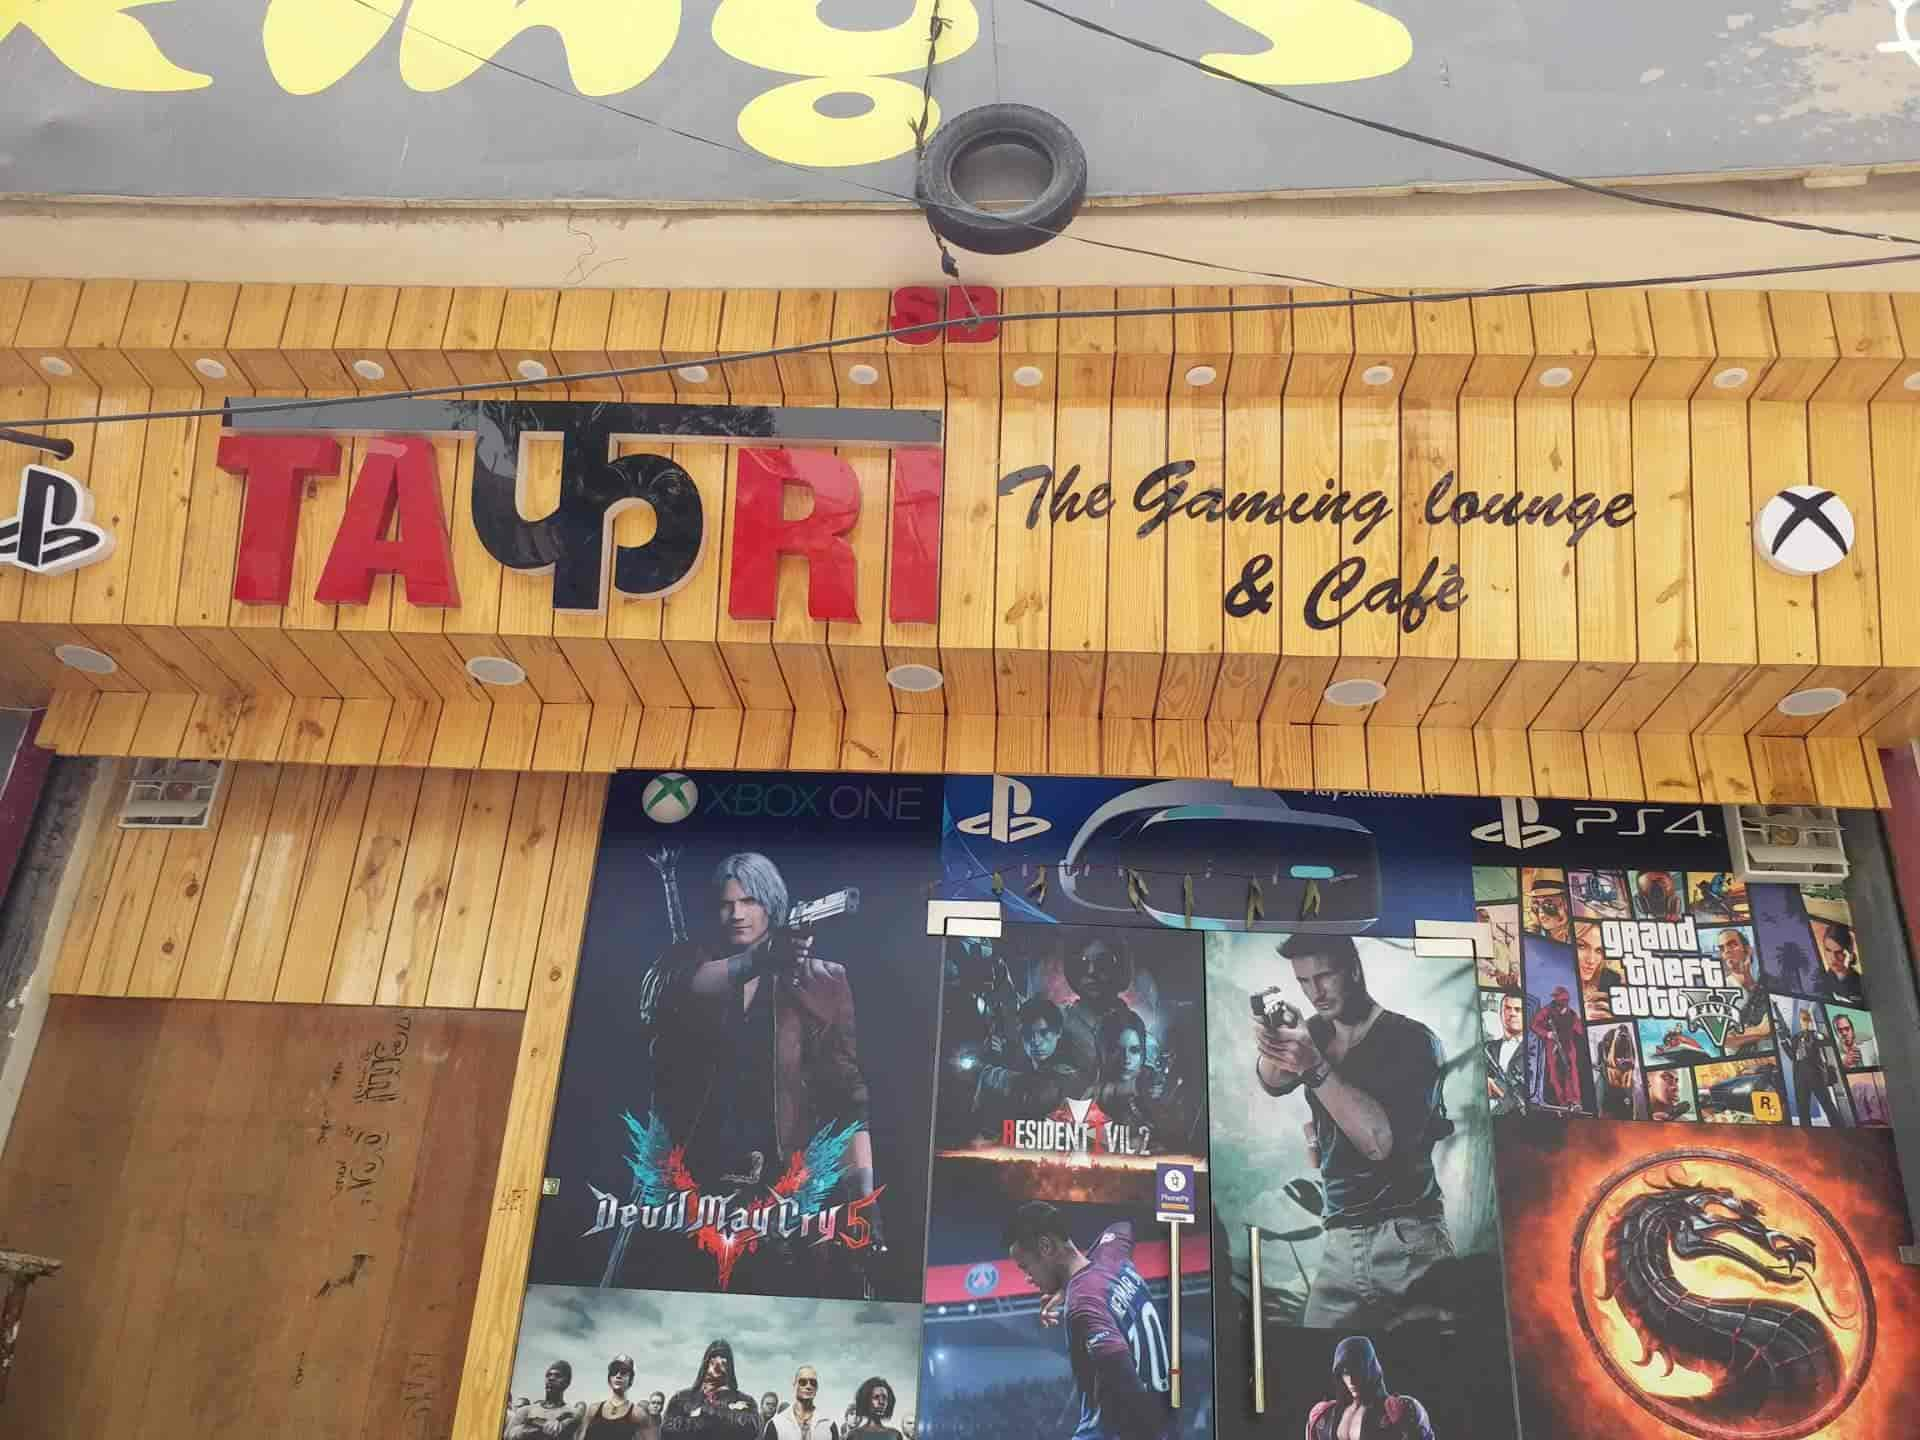 Tafri The Gaming Lounge Cafe Photos, New Mohanpuri, Meerut- Pictures